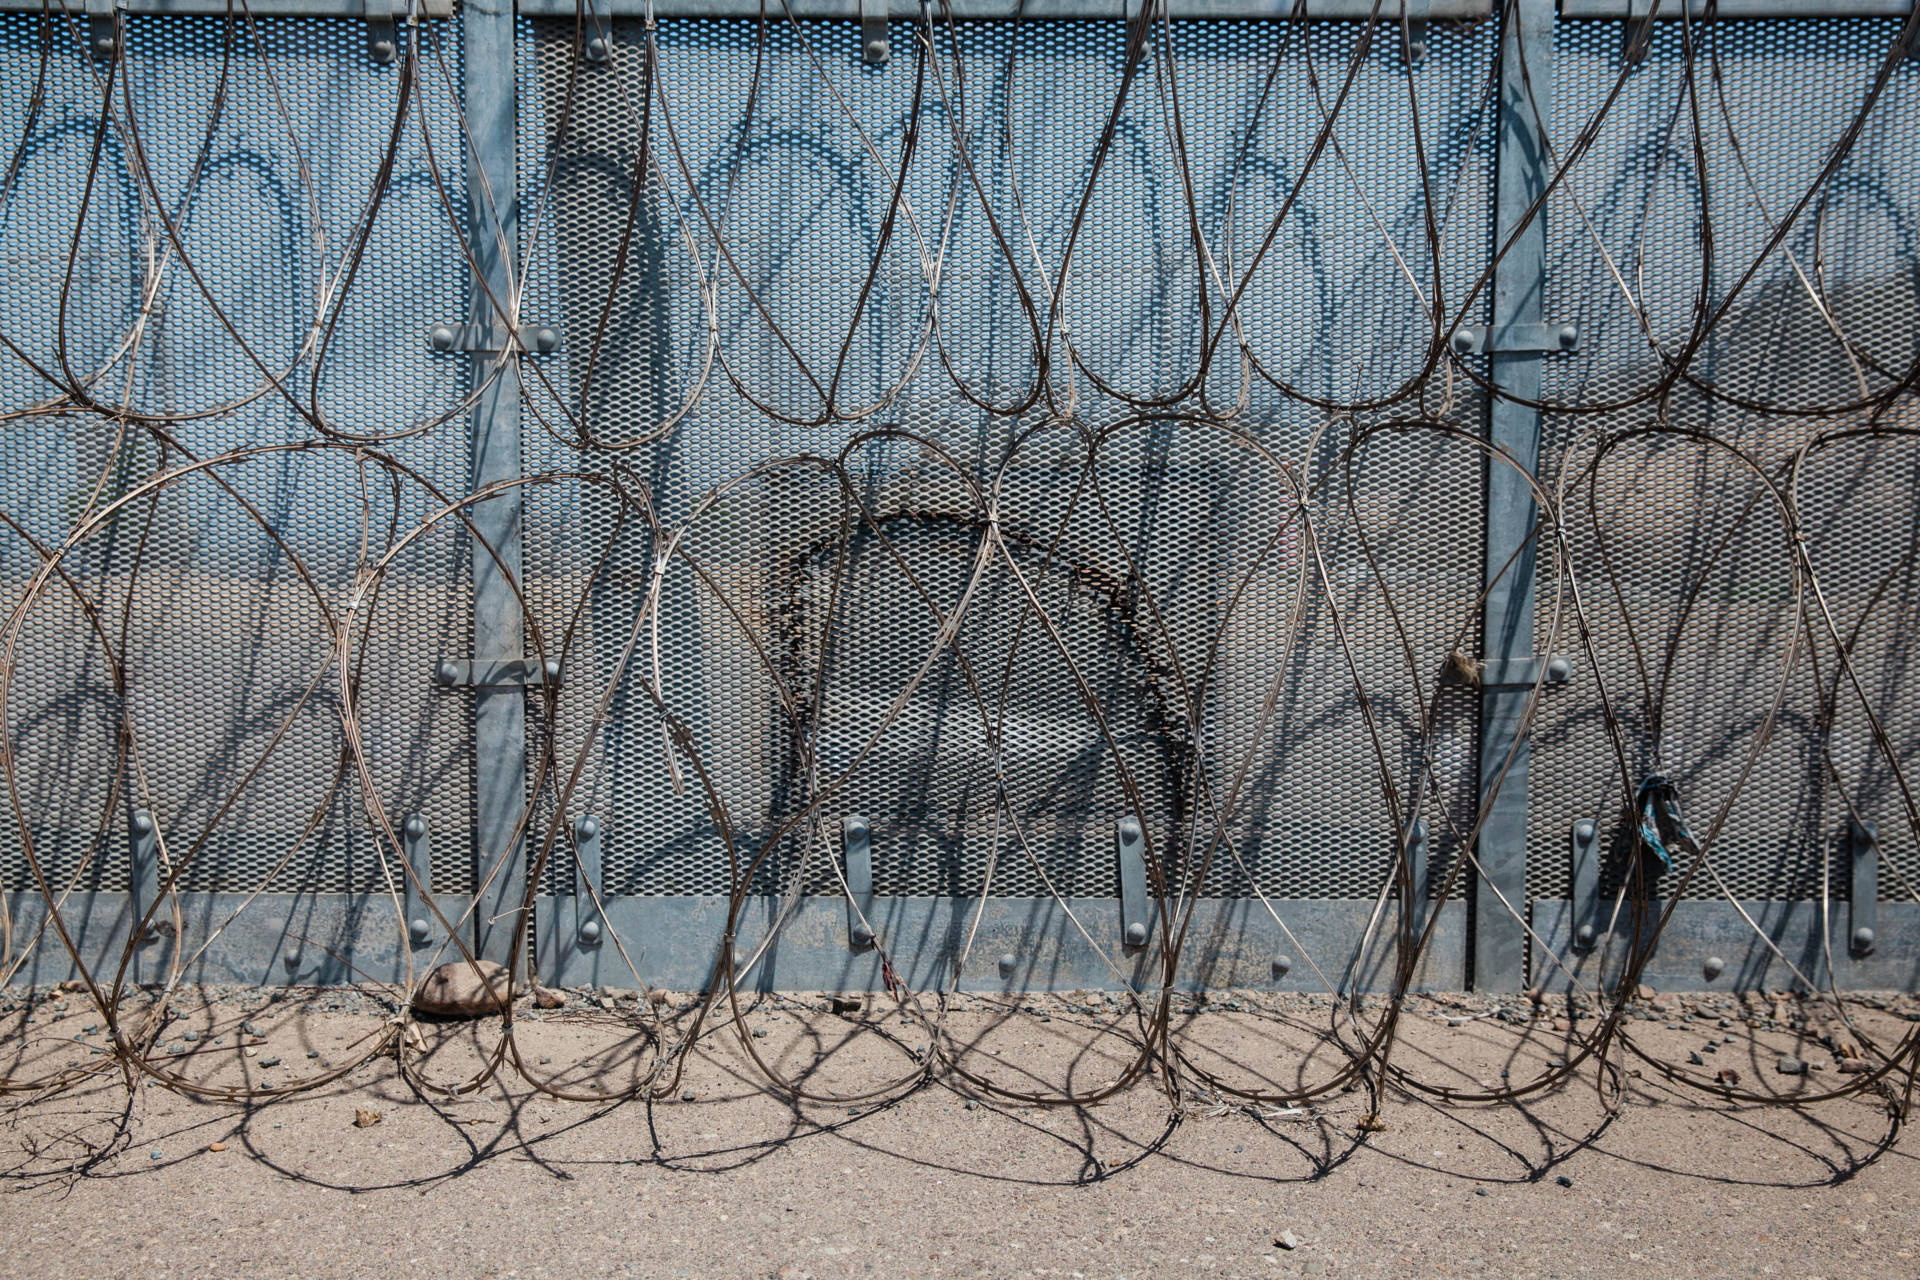 Patchwork of razor wire on the secondary fence south-east of Spooner's Mesa at the San Diego - Tijuana border. The secondary fence gets patched up quite often due to it being cut by people who are trying to go to the United States illegally. (KQED/Drehsler)